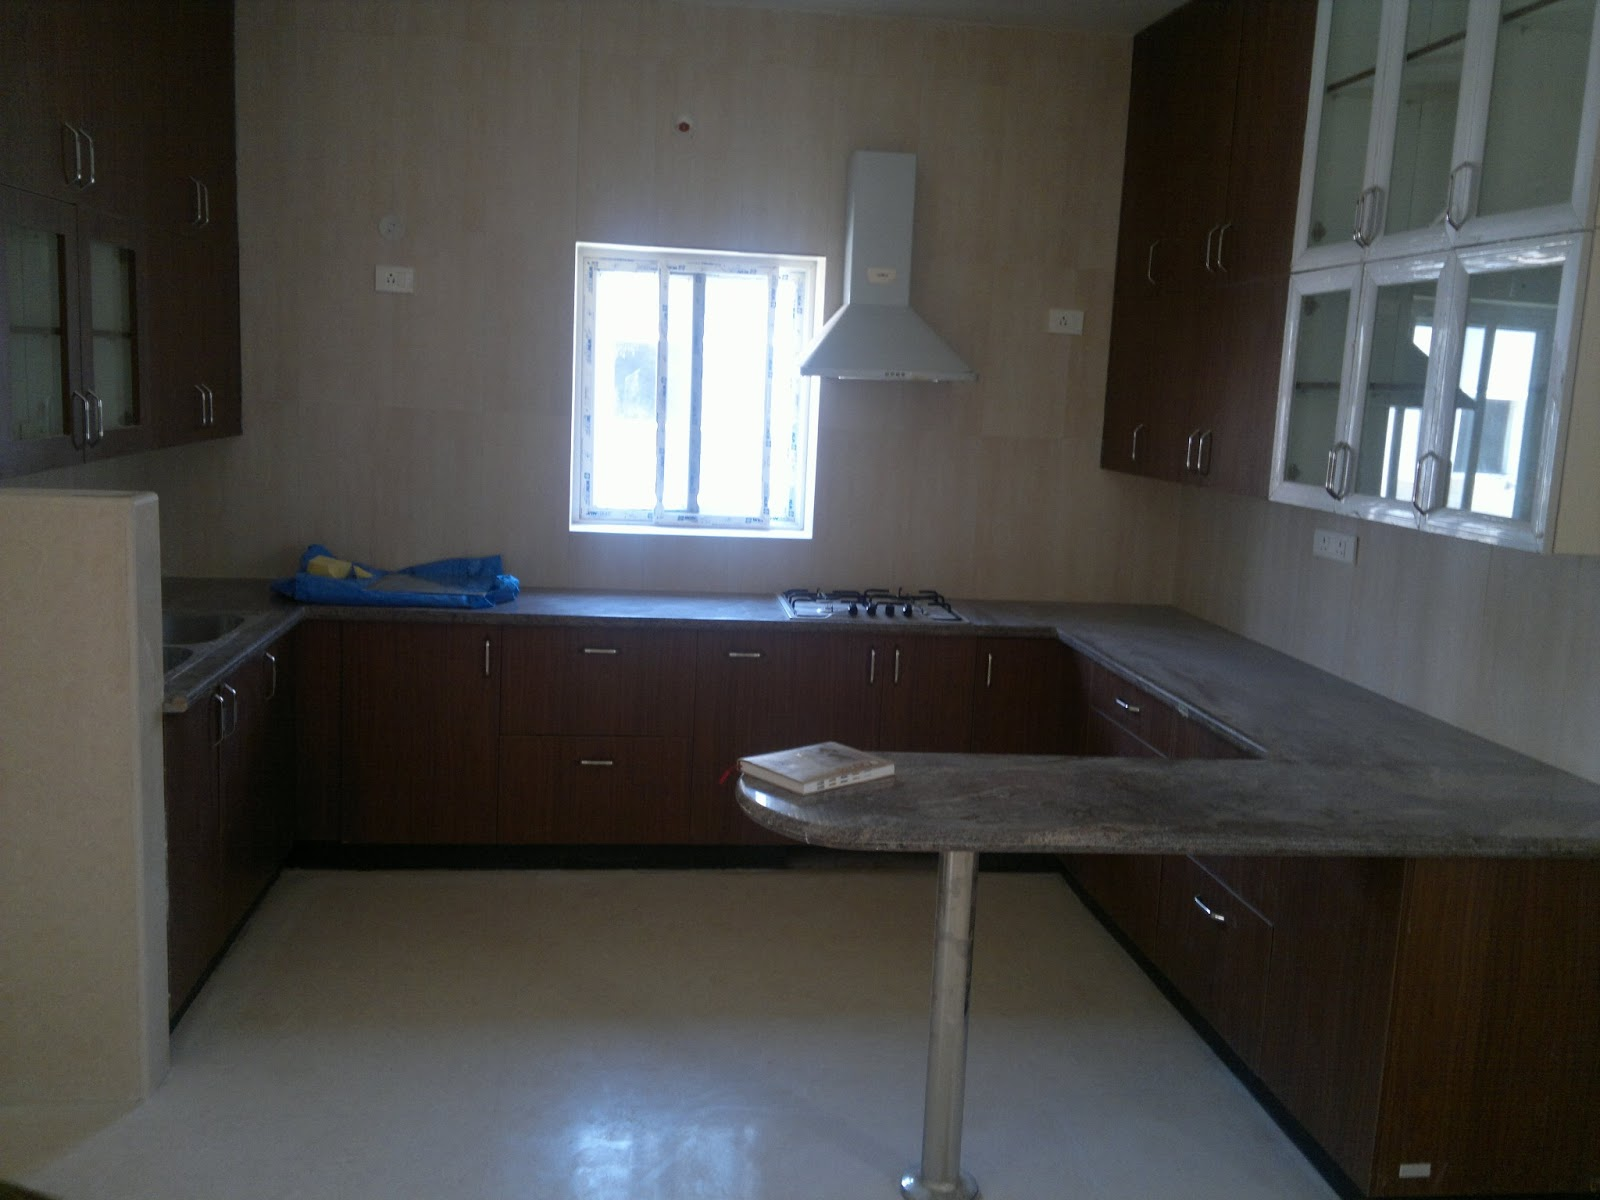 Interiors in hyderabad modular kitchen cost 2 8 lakhs for M kitchen hyderabad